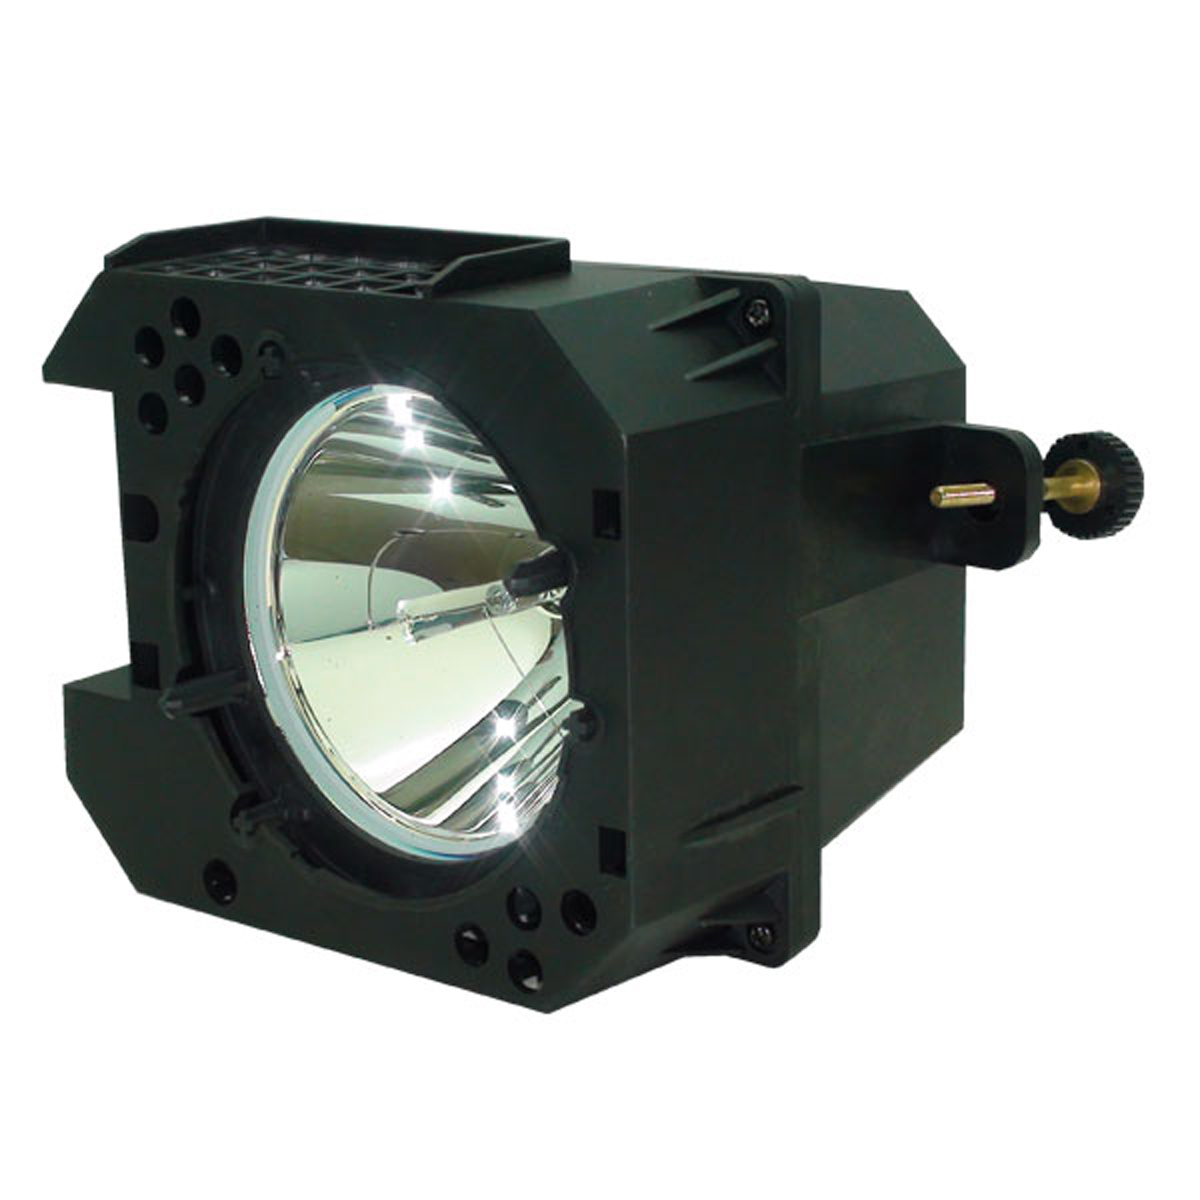 Kolin PT-501 TV Lamp